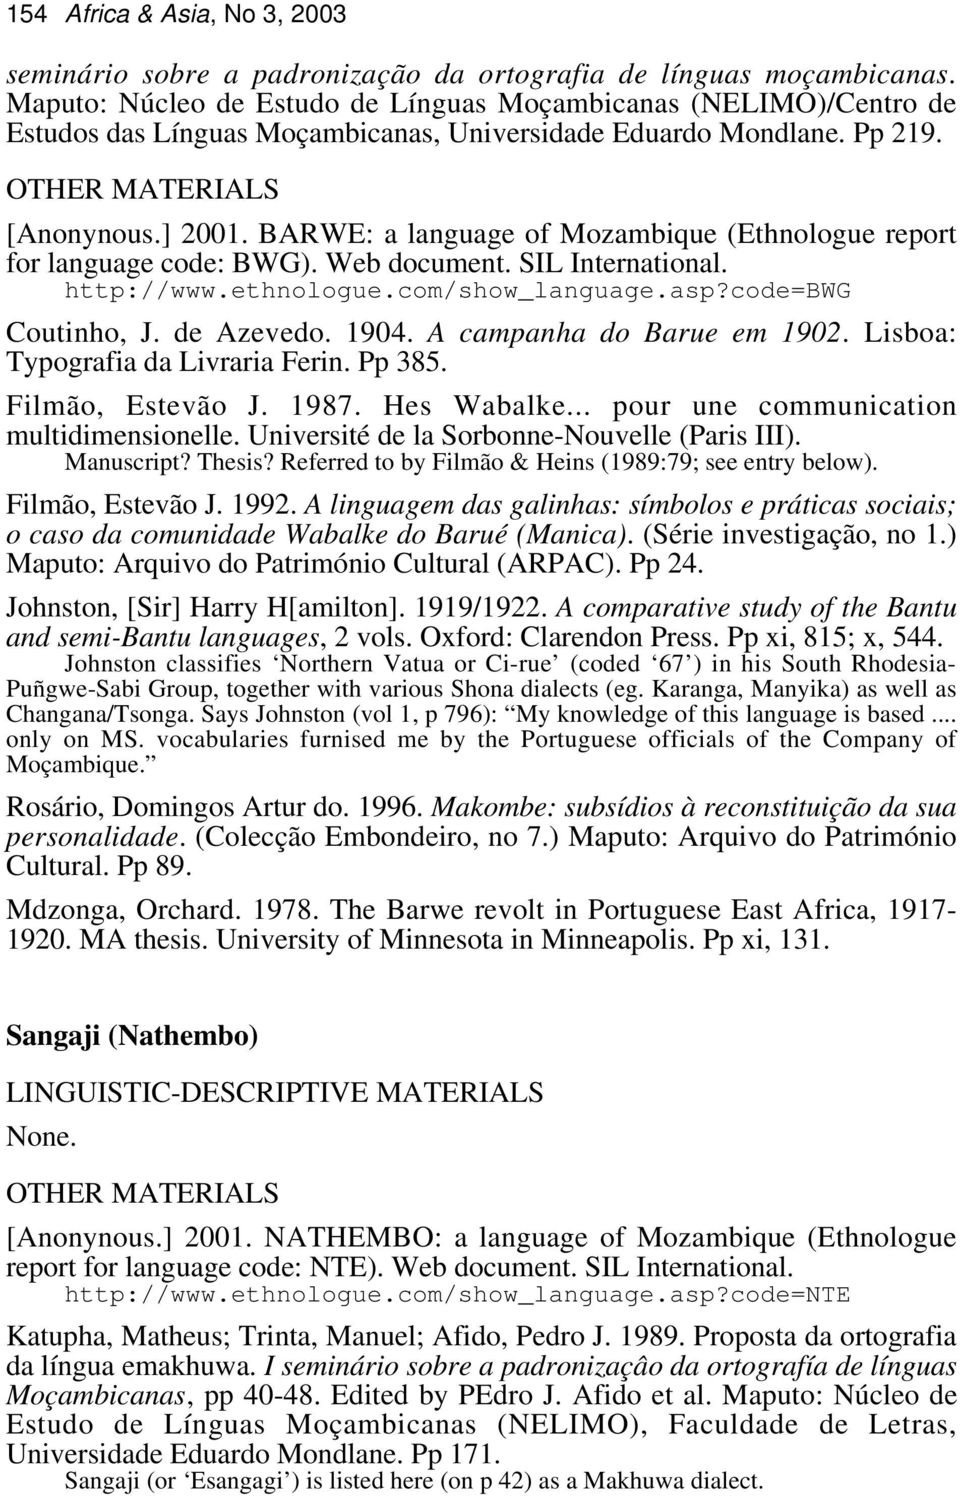 BARWE: a language of Mozambique (Ethnologue report for language code: BWG). Web document. SIL International. http://www.ethnologue.com/show_language.asp?code=bwg Coutinho, J. de Azevedo. 1904.